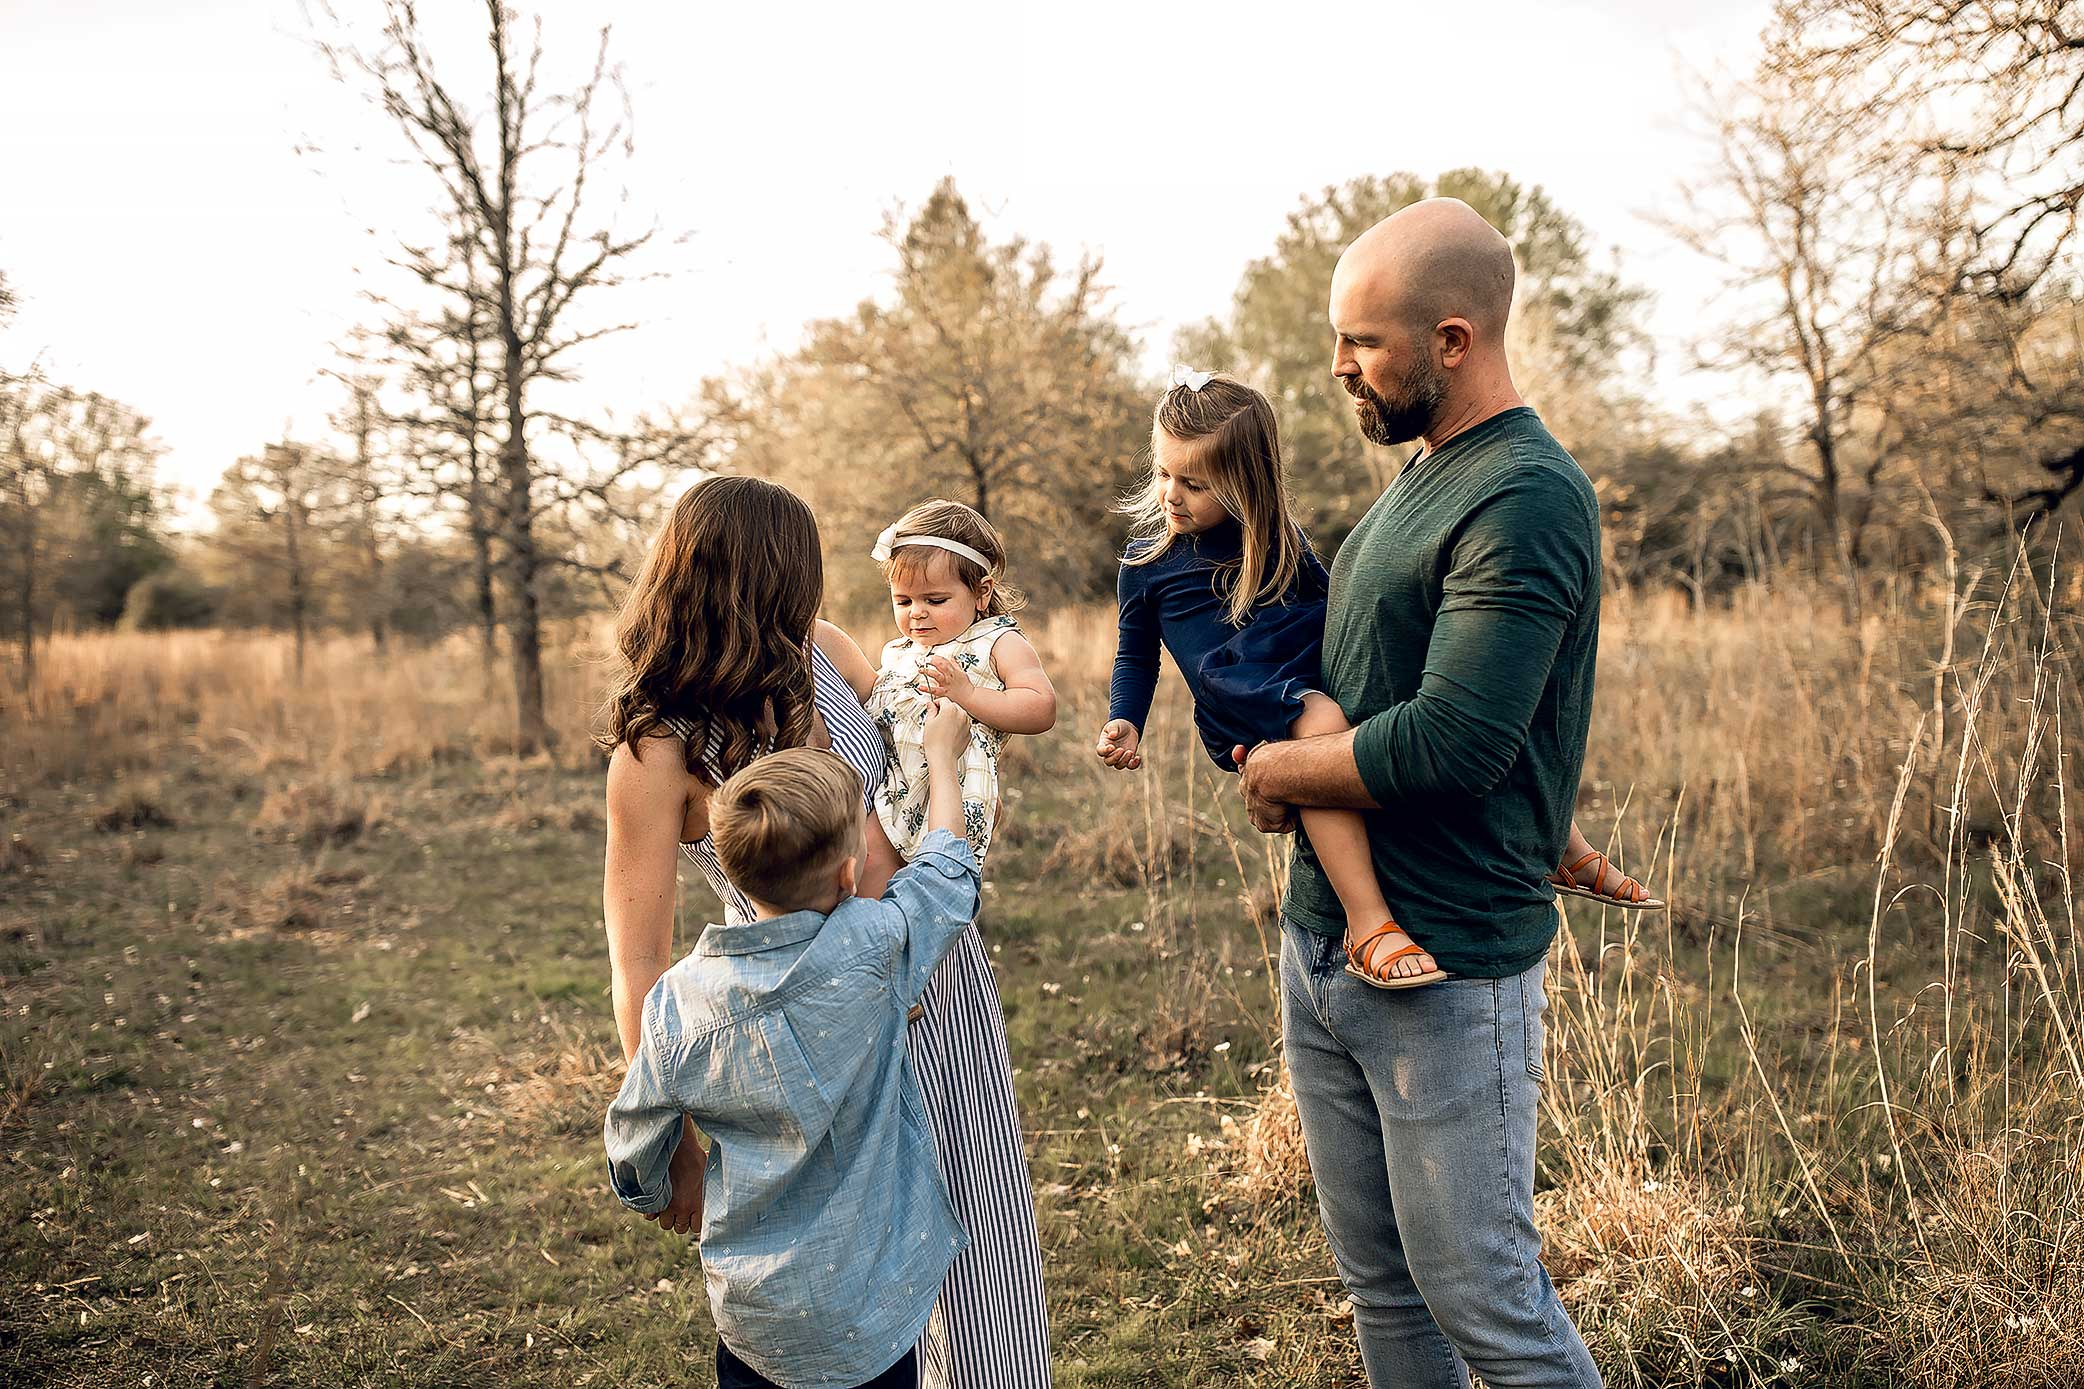 shelby-schiller-photography-lifestyle-family-session-with-3-kids-spring-2019-green-blue-yellow-college-station-21.jpg